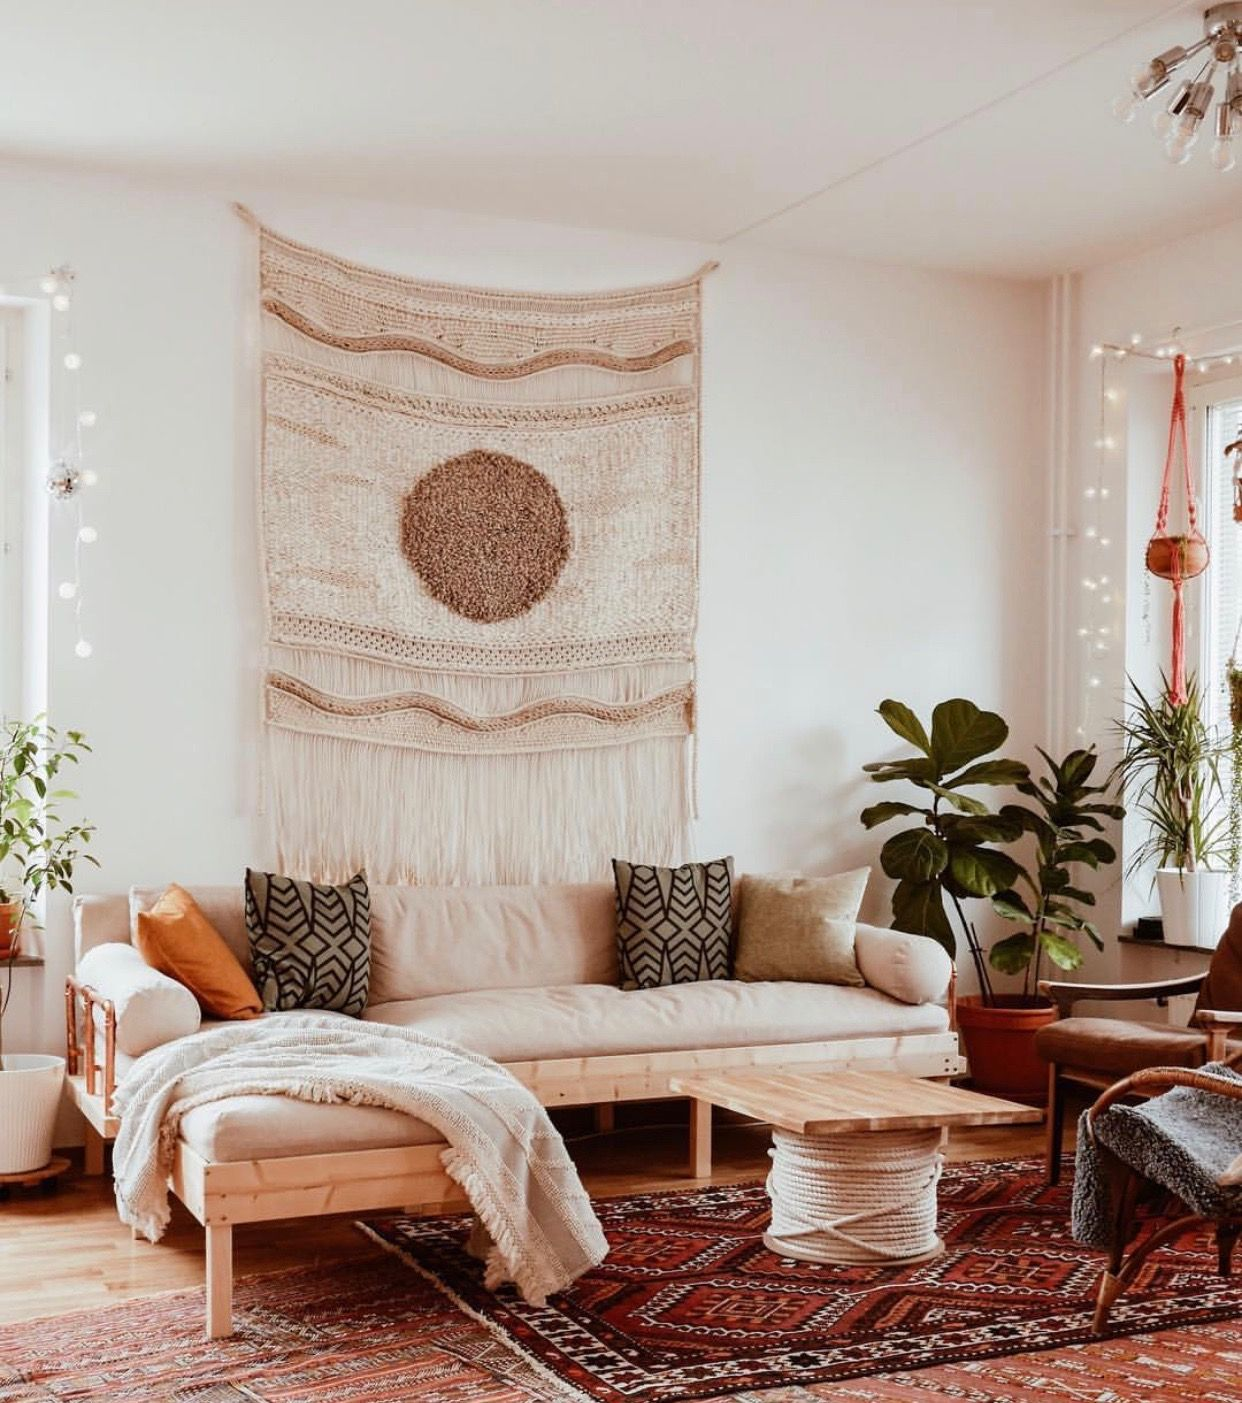 Inexpensive Cottage Style Living Room Furniture From Ikea: Pin By Amanda Schneider On HOME